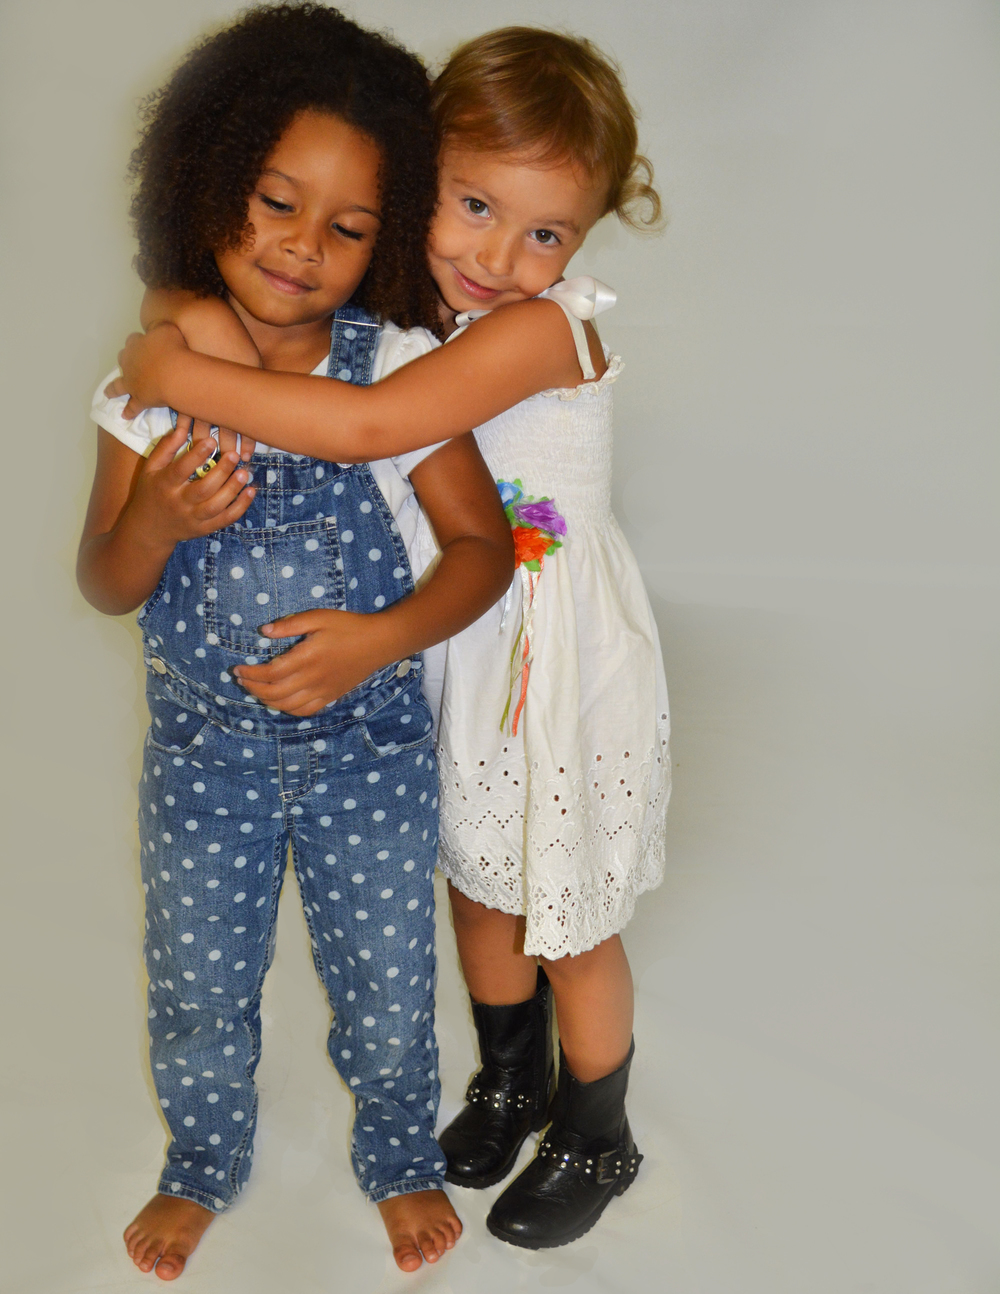 Temily-and-Sofie-Hugging_Toddlertime-1_WEB.jpg